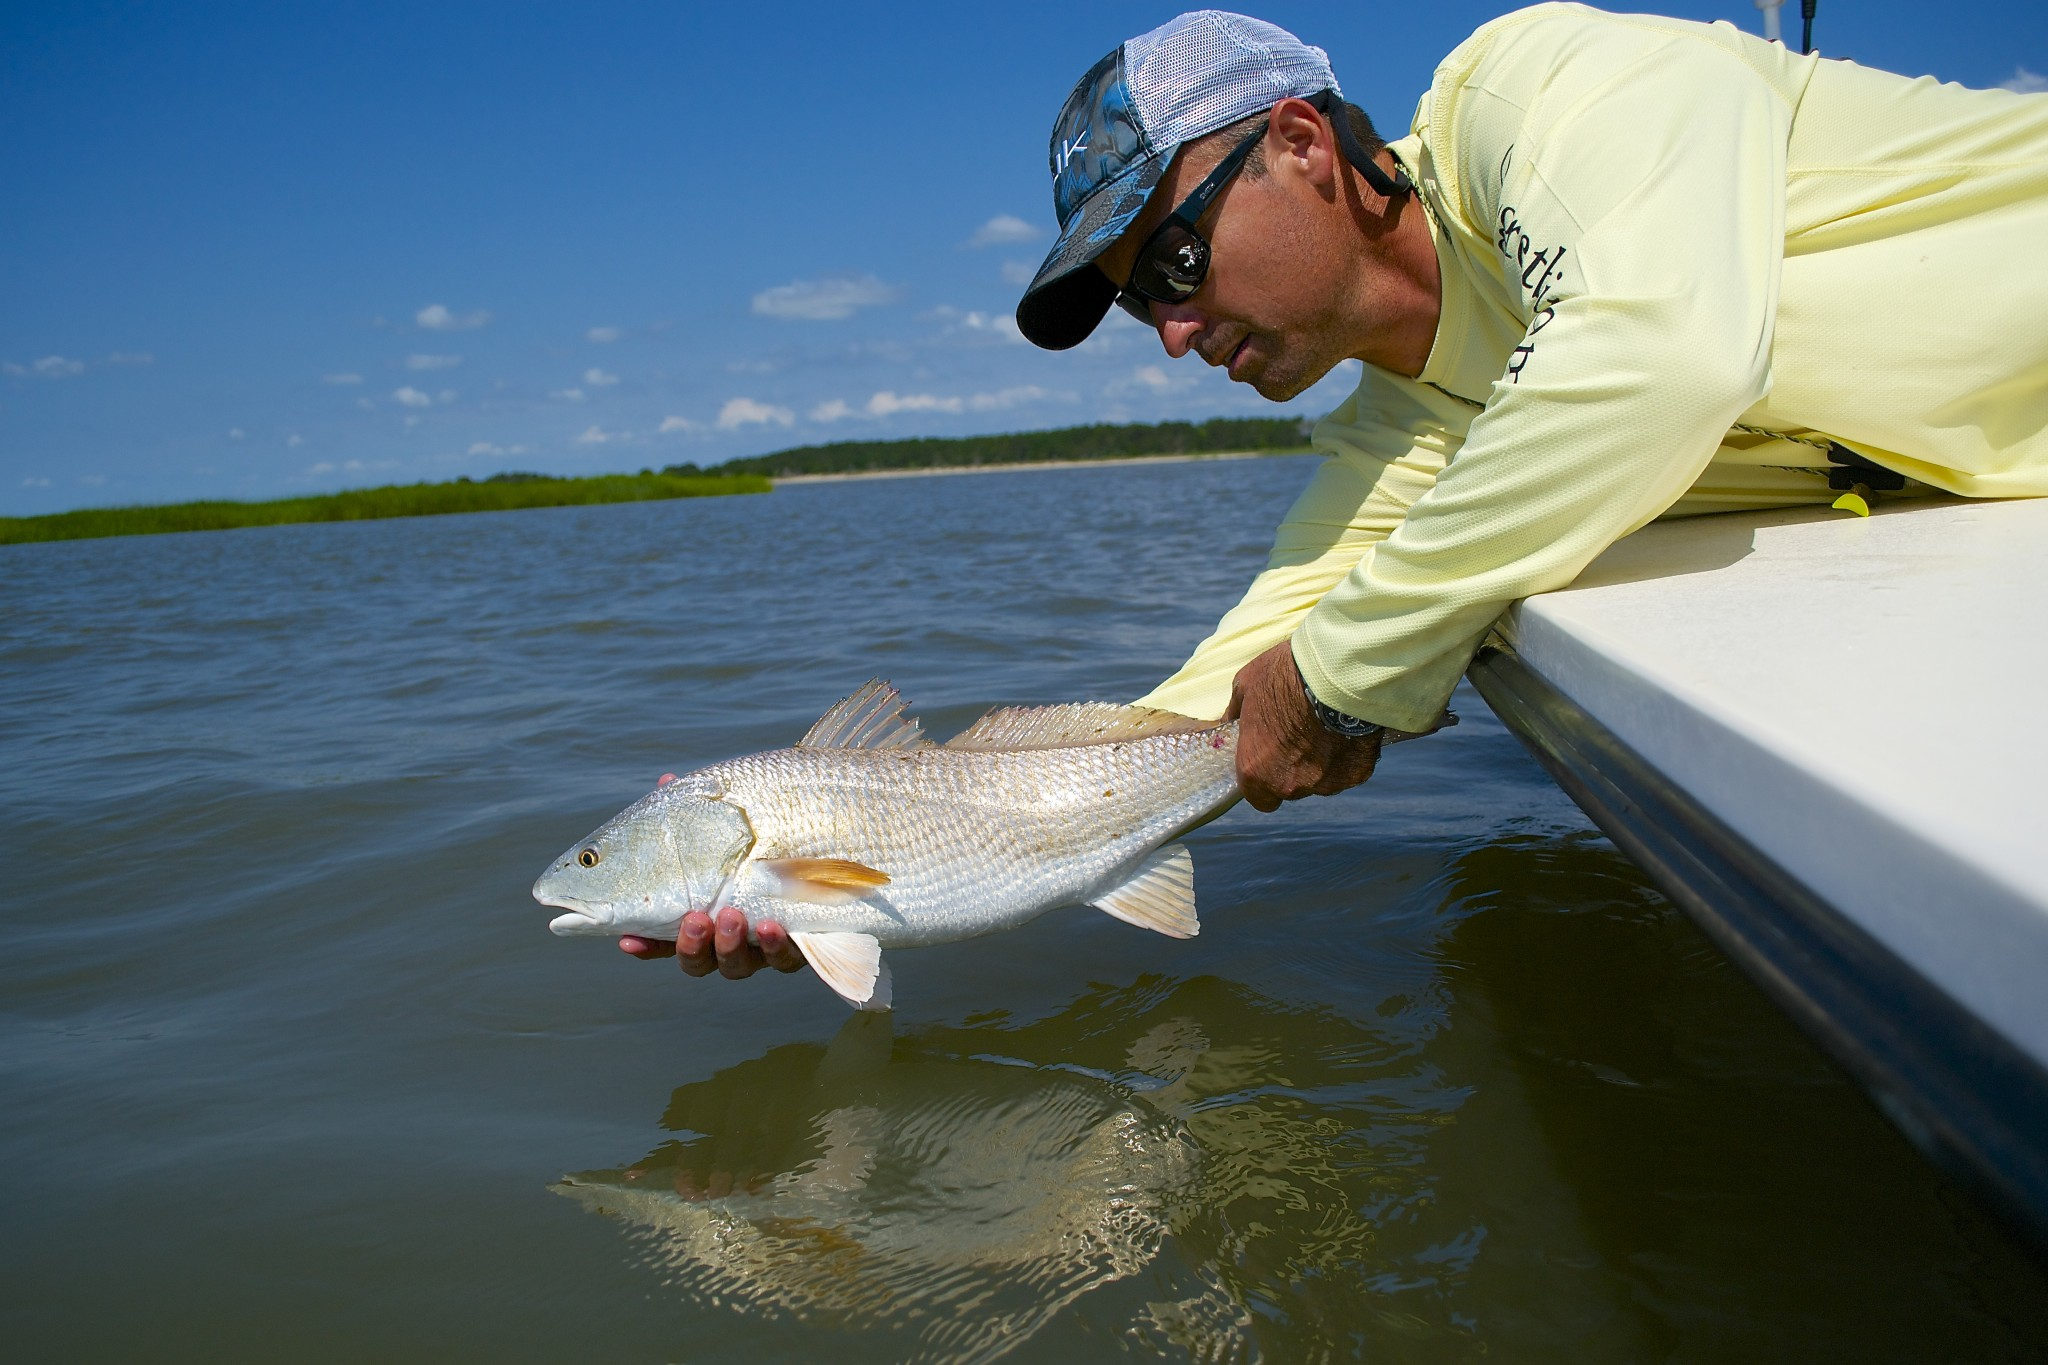 Angler releasing redfish back into the water